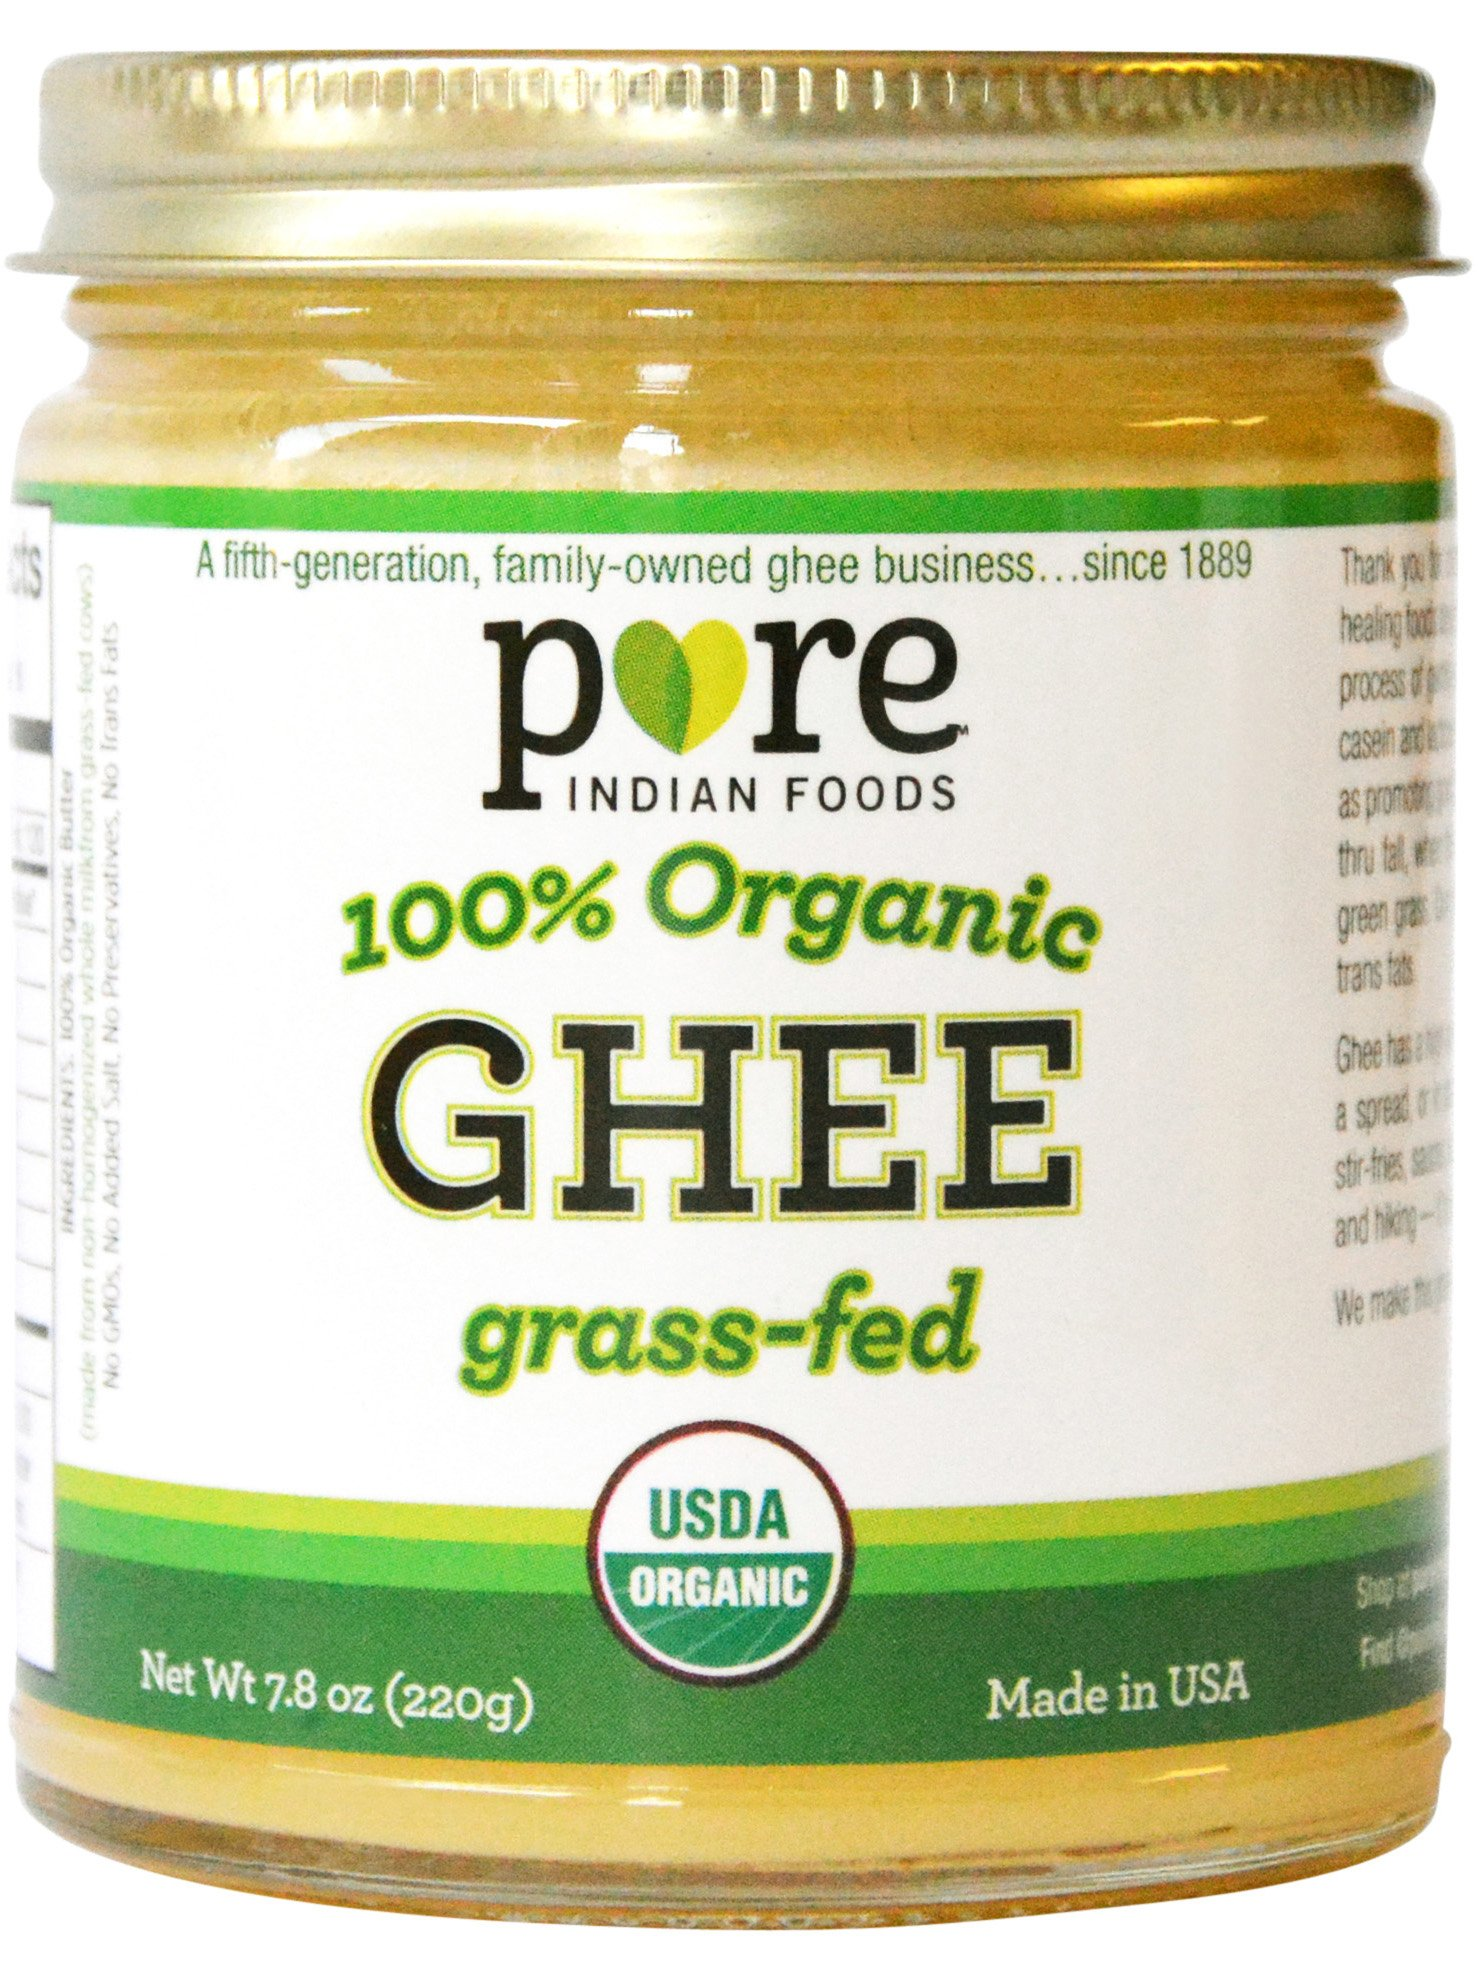 Grassfed Organic Ghee 7.8 Oz - Pure Indian Foods(R) Brand by Pure Indian Foods (Image #1)